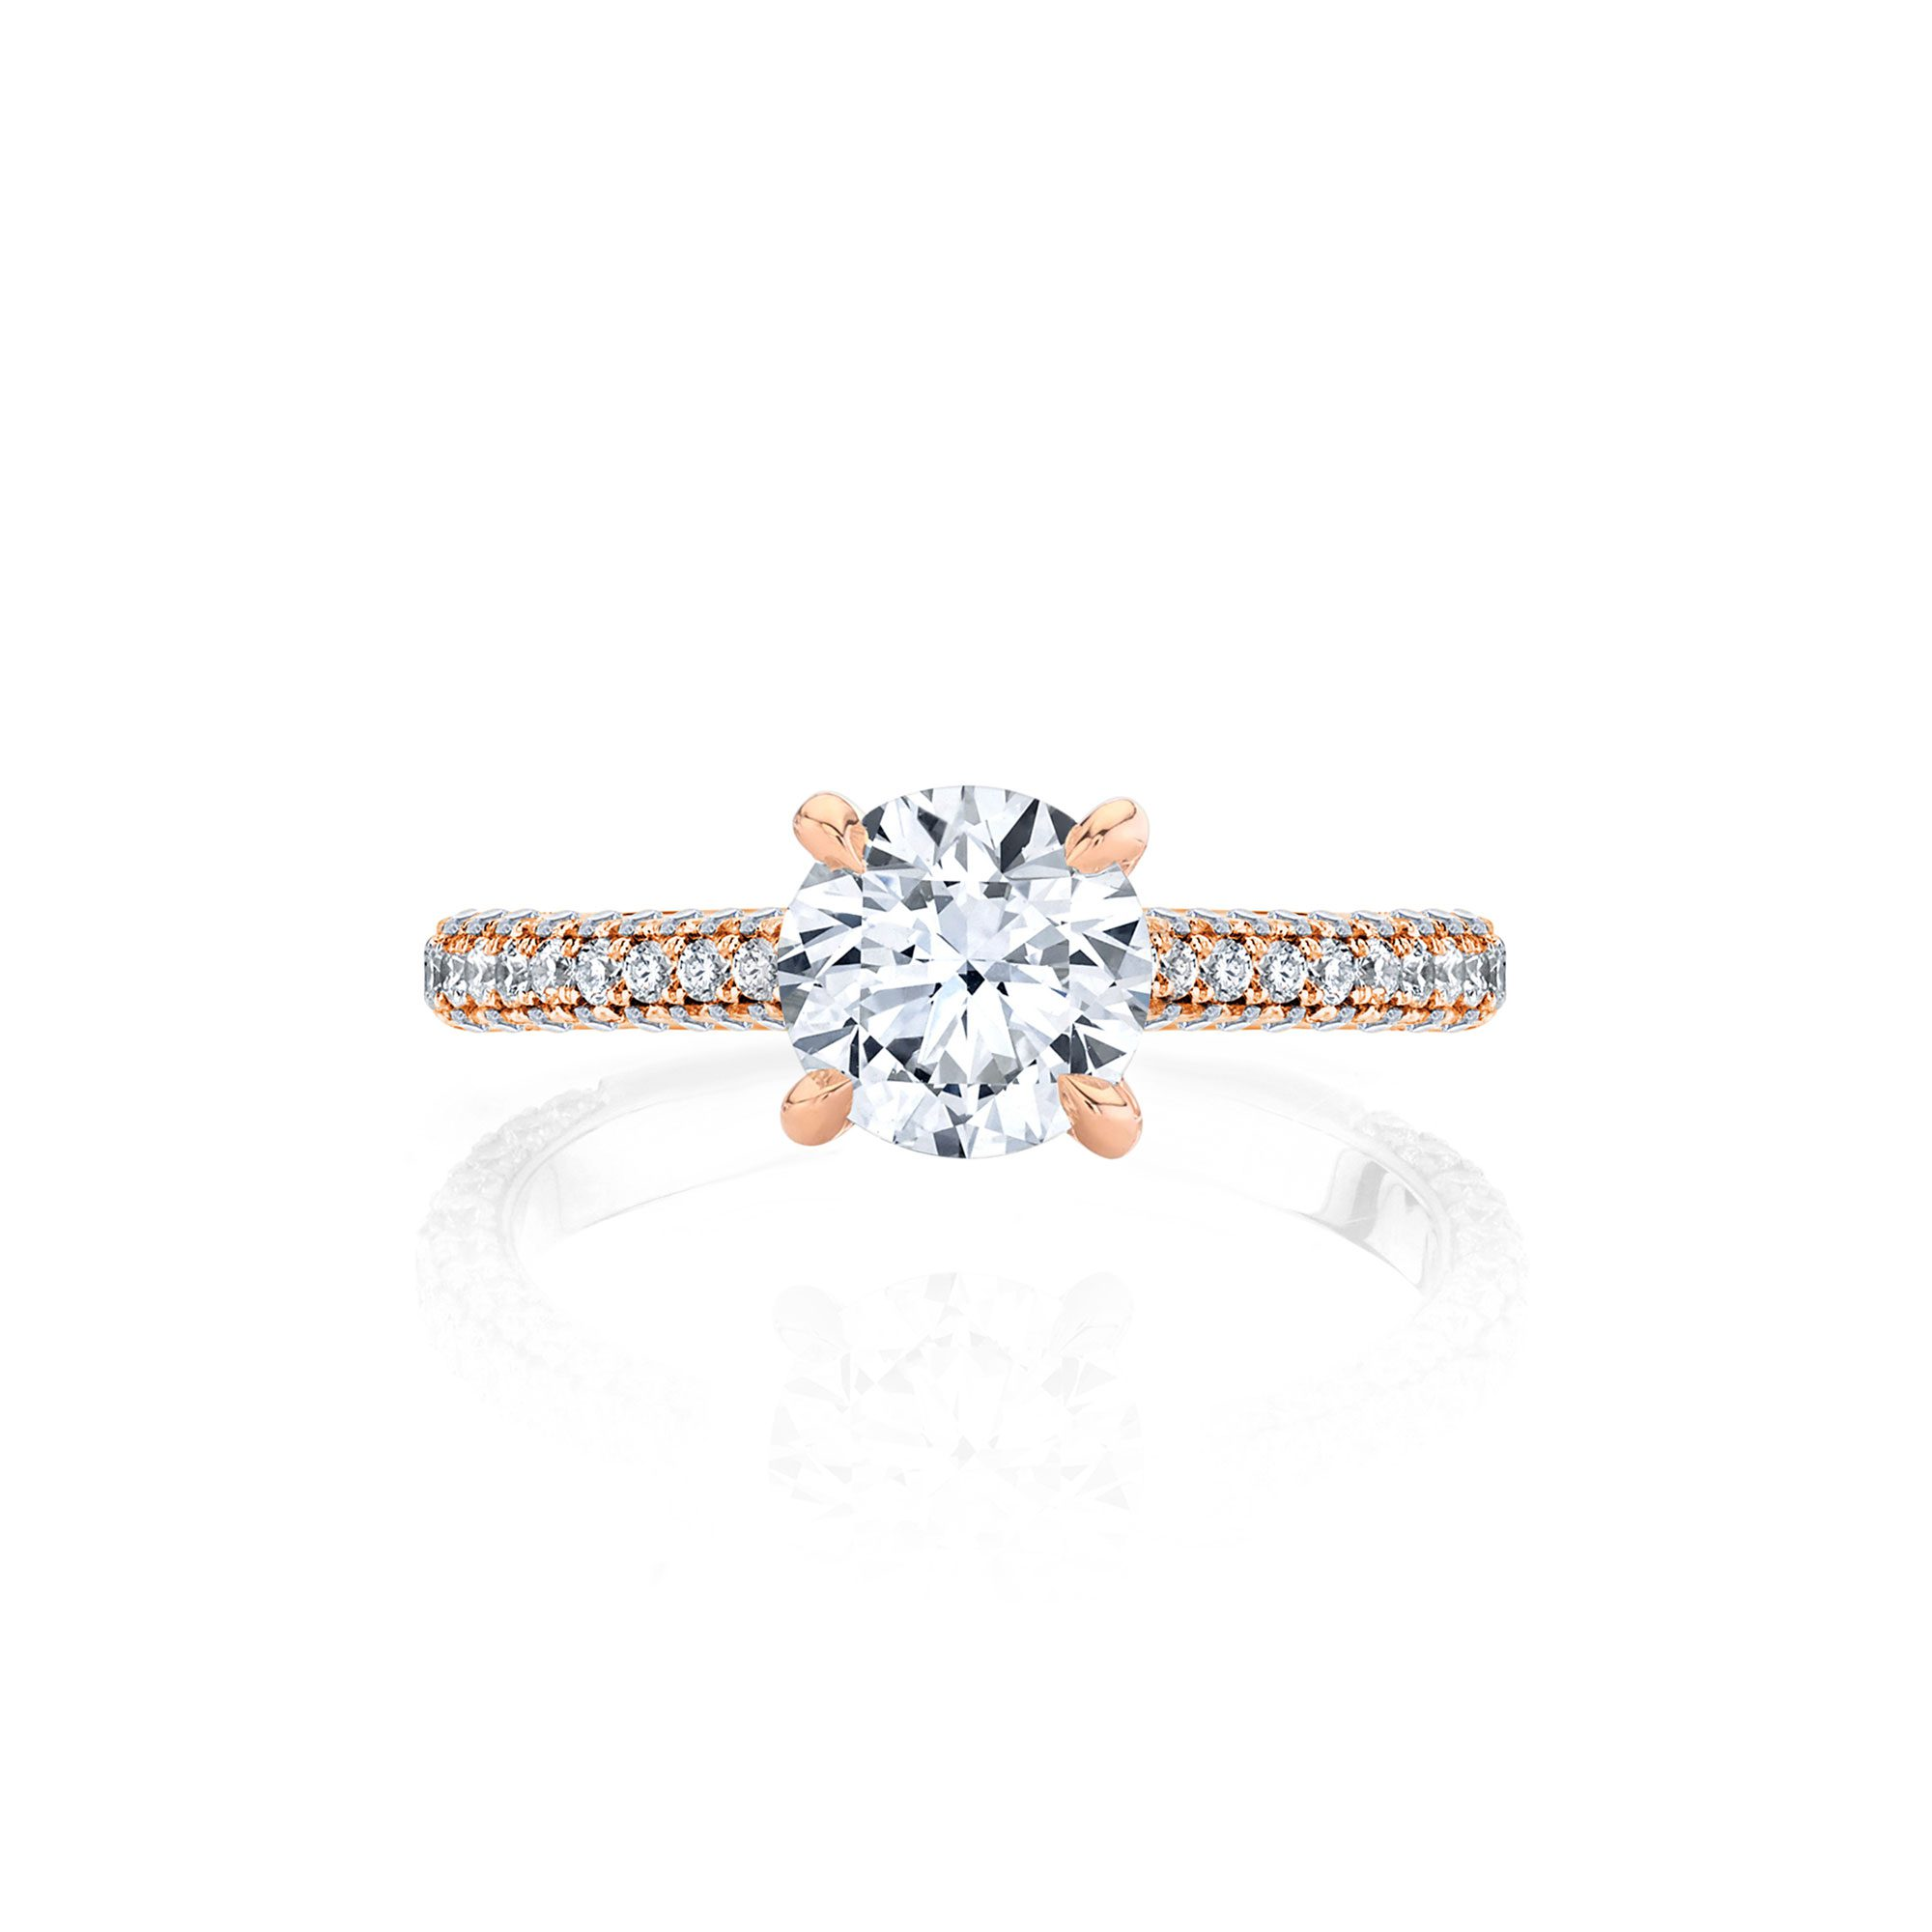 Jacqueline Solitaire Round Brilliant Cut Lab Diamond Engagement Ring with pavé 18k rose gold band.